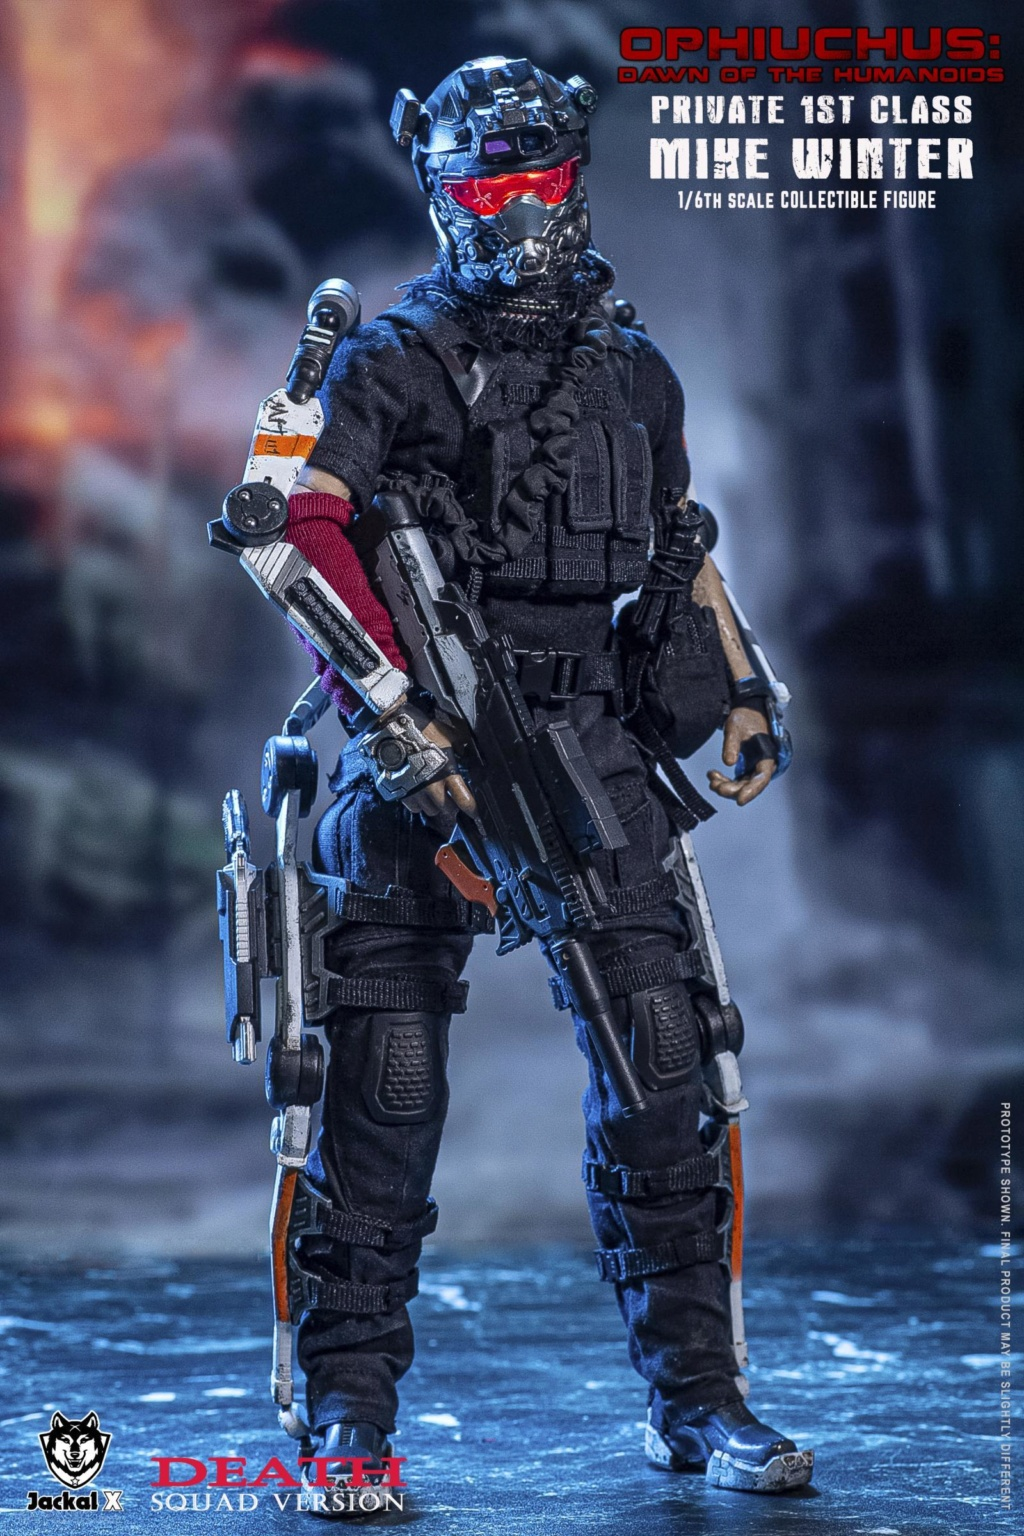 military - NEW PRODUCT: JackalX: 1/6 Ophiuchus: Dawn of Humanoid: Private 1st Class Mike Winter Collectible Figure (2 Versions) 43202039